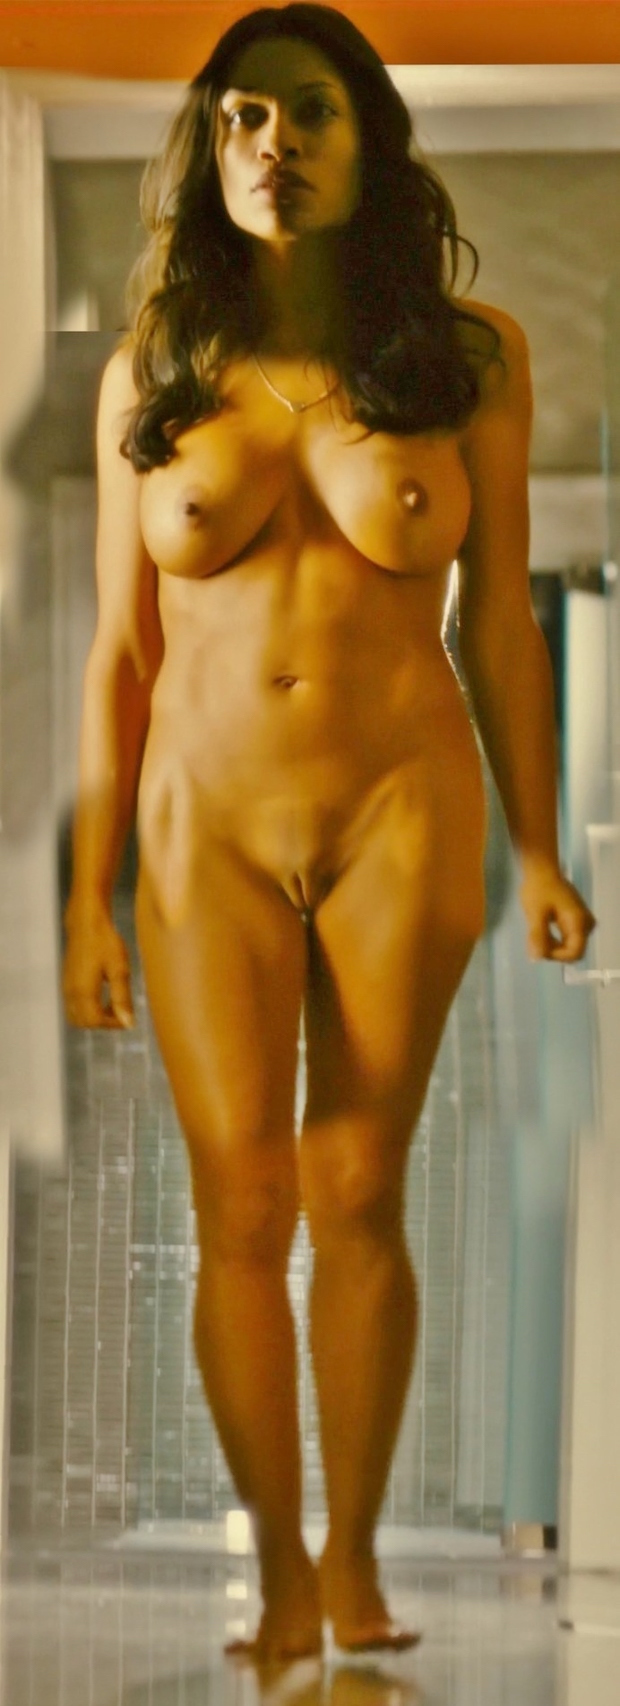 Naked Pictures Of Rosario Dawson